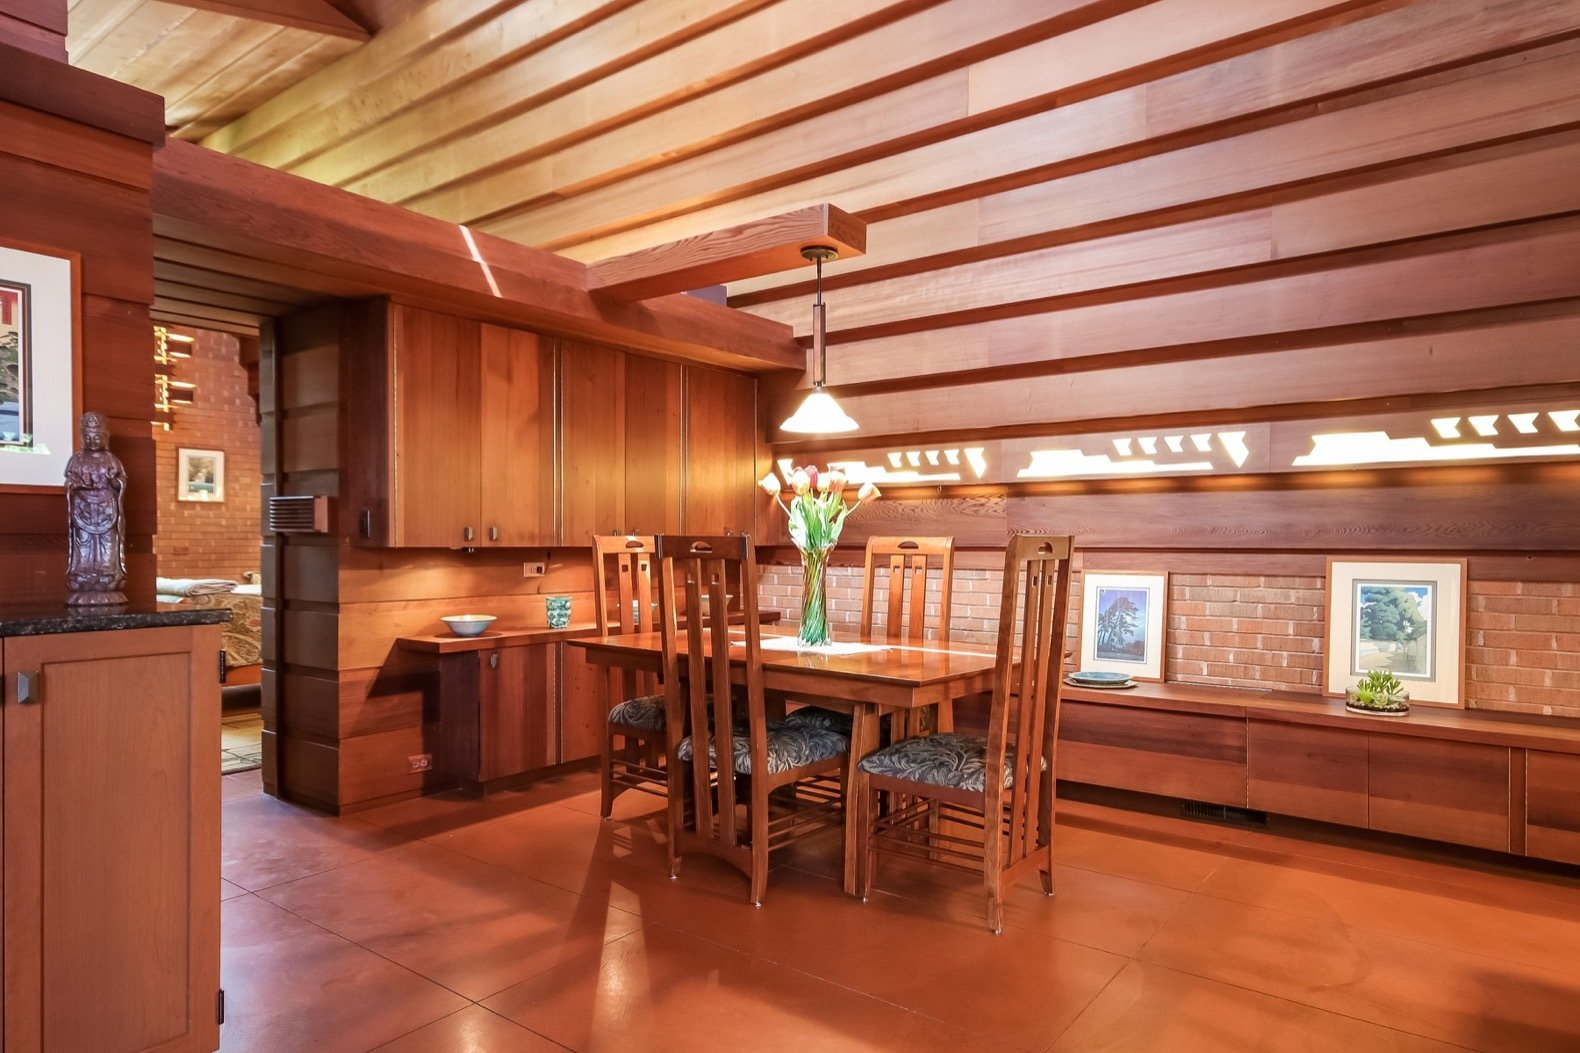 Dining Room, Chair, Table, Pendant Lighting, Storage, and Concrete Floor Reddish concrete floors can be found throughout. Wright's original gravity heating system still works.  Photo 6 of 17 in A Gorgeous Frank Lloyd Wright Home Hits the Market For the First Time at $1.2M